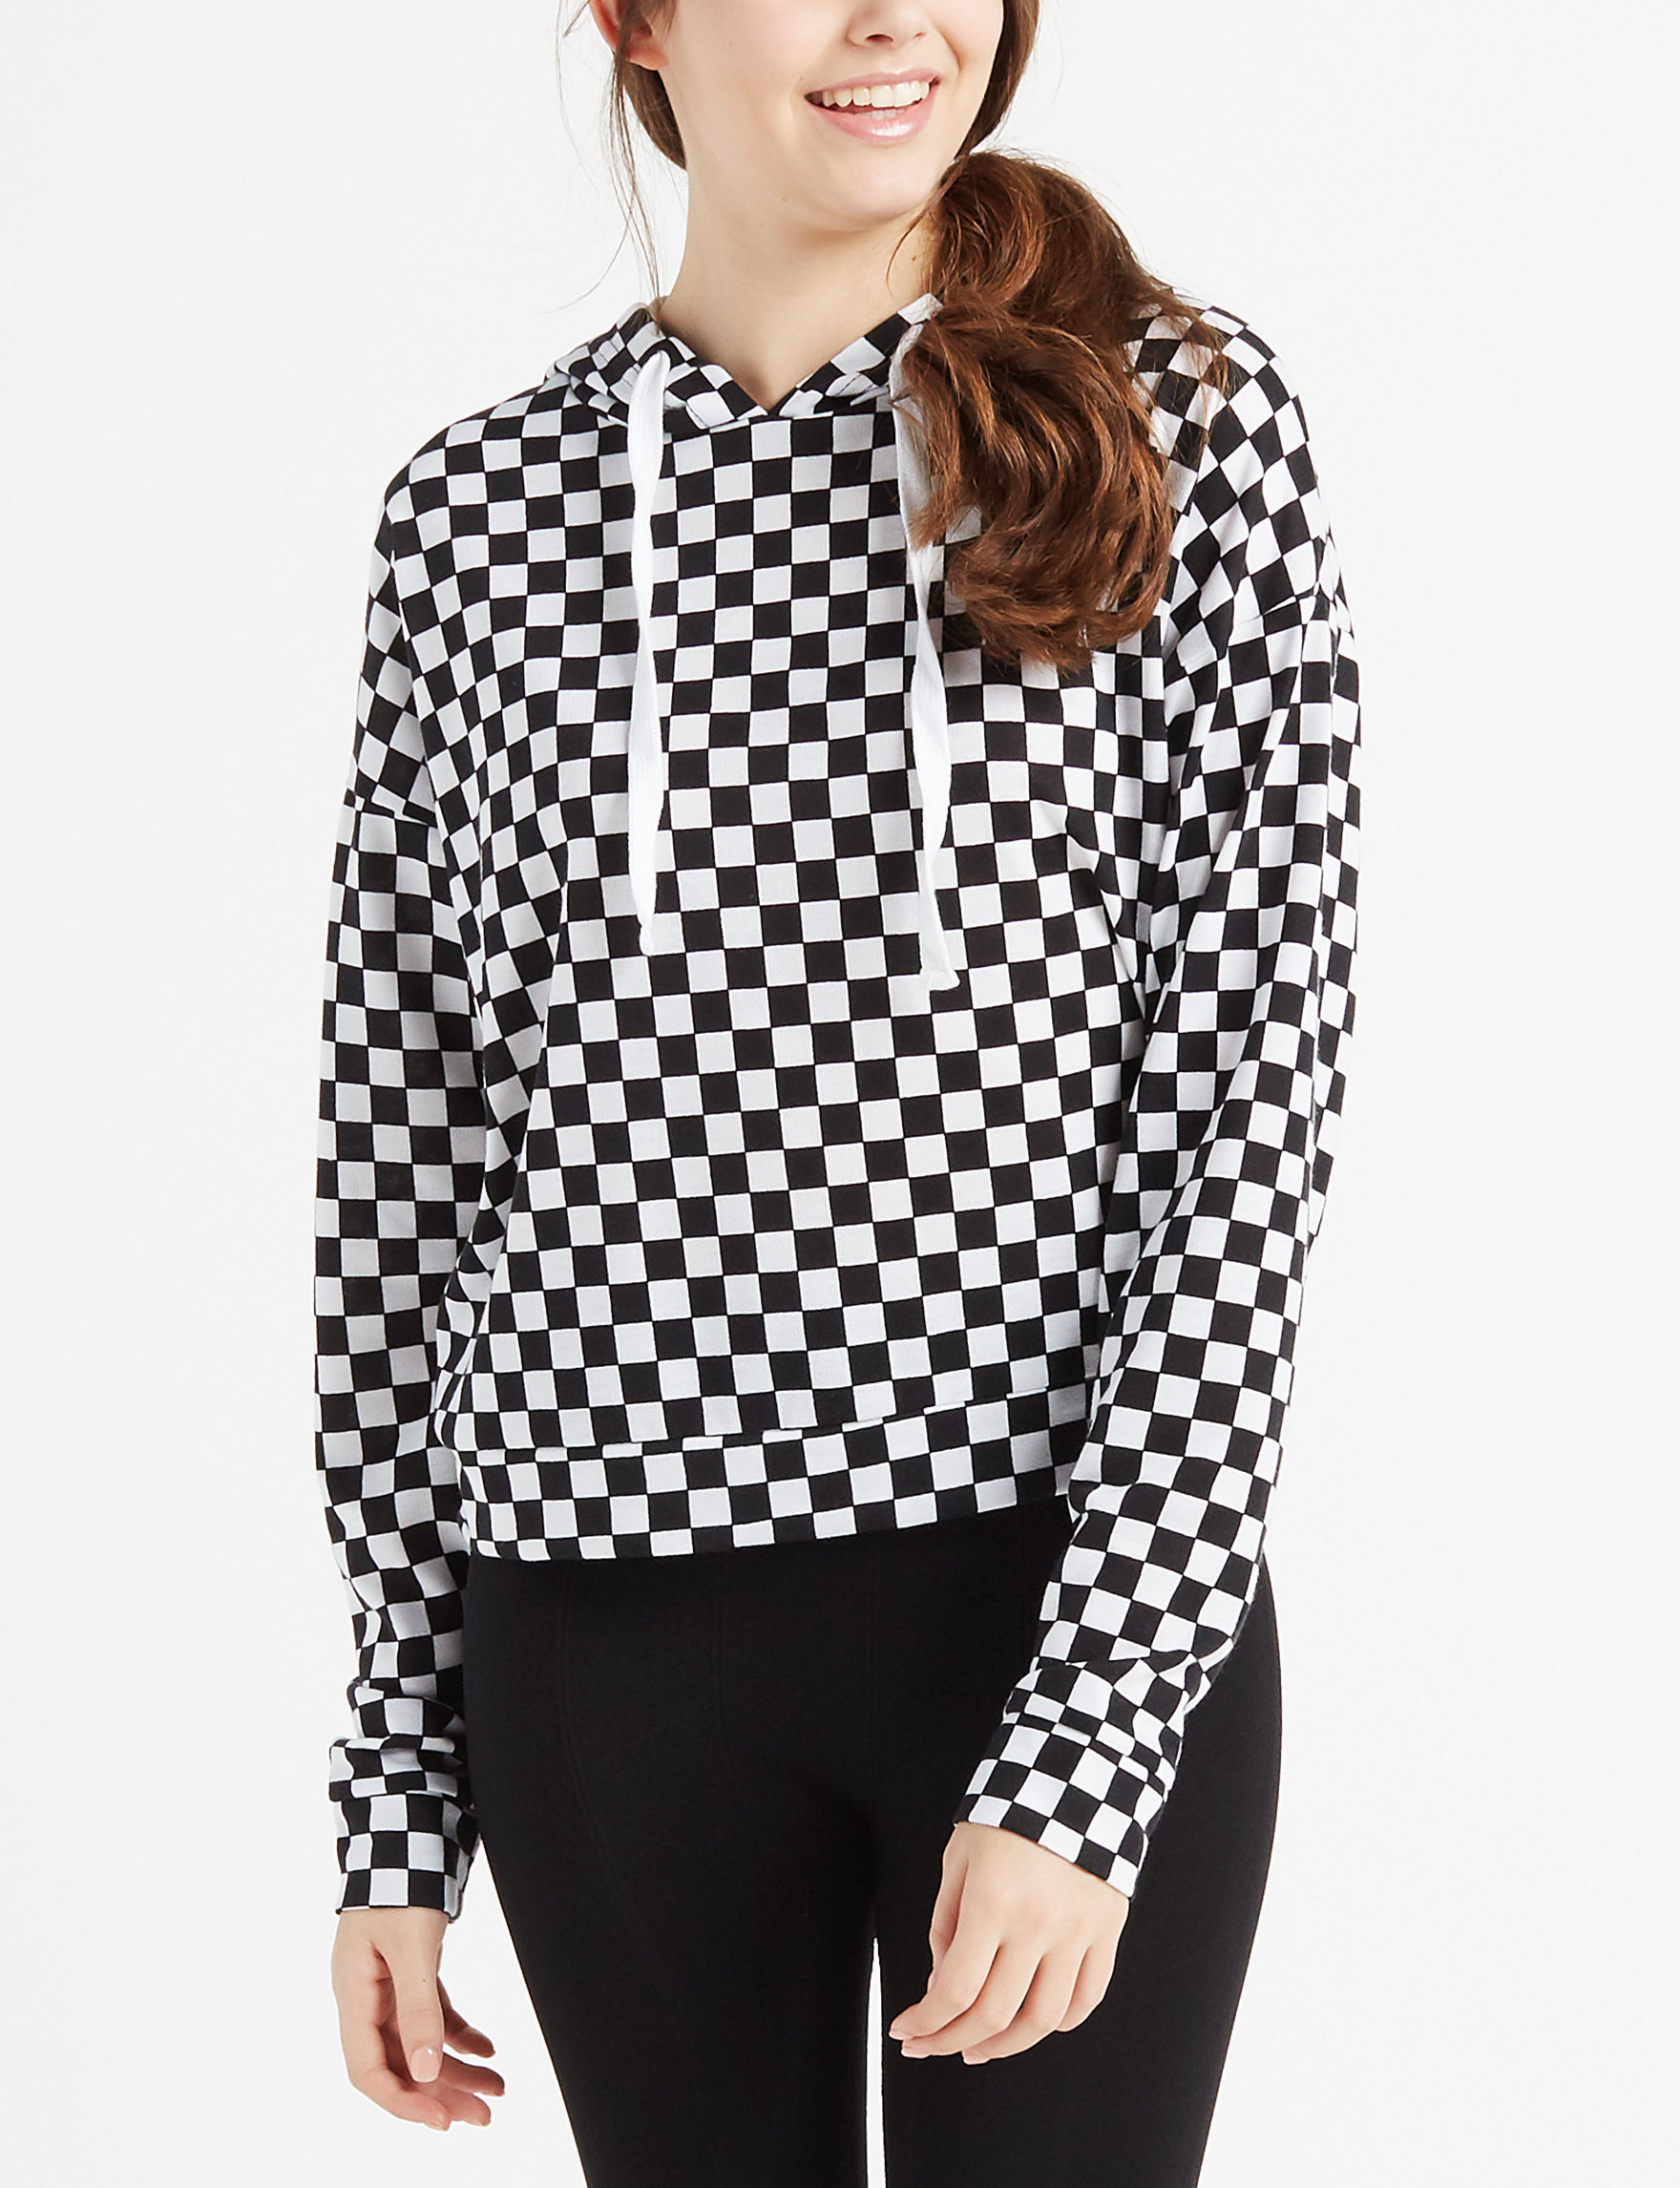 Justify Black / White Pull-overs